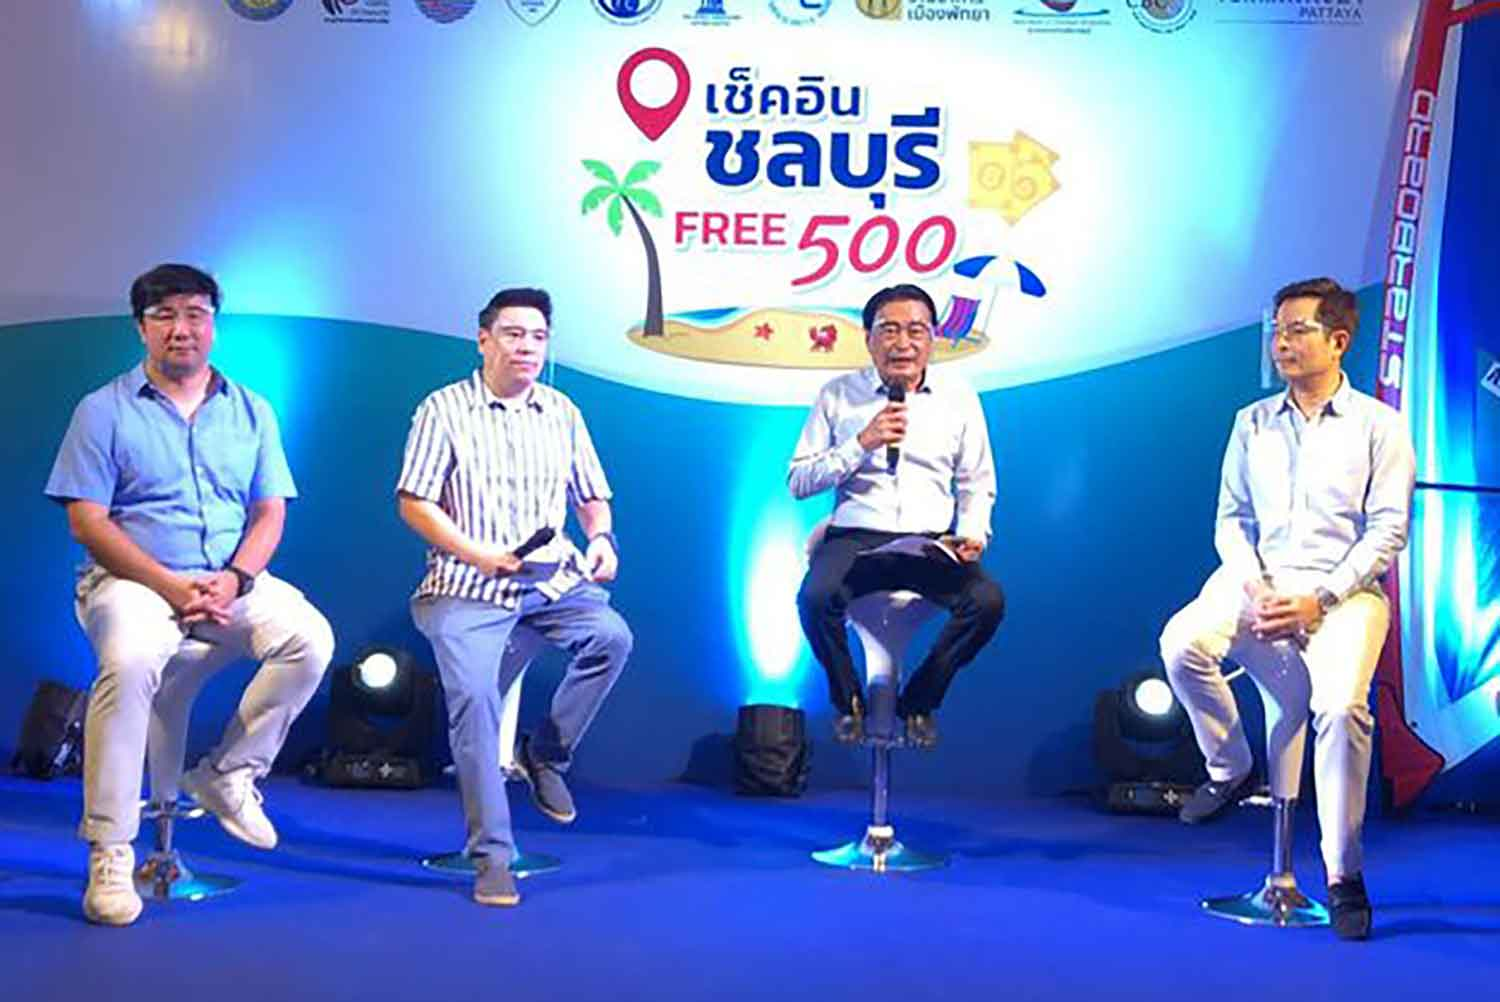 Tourism authorities in Chon Buri launched the